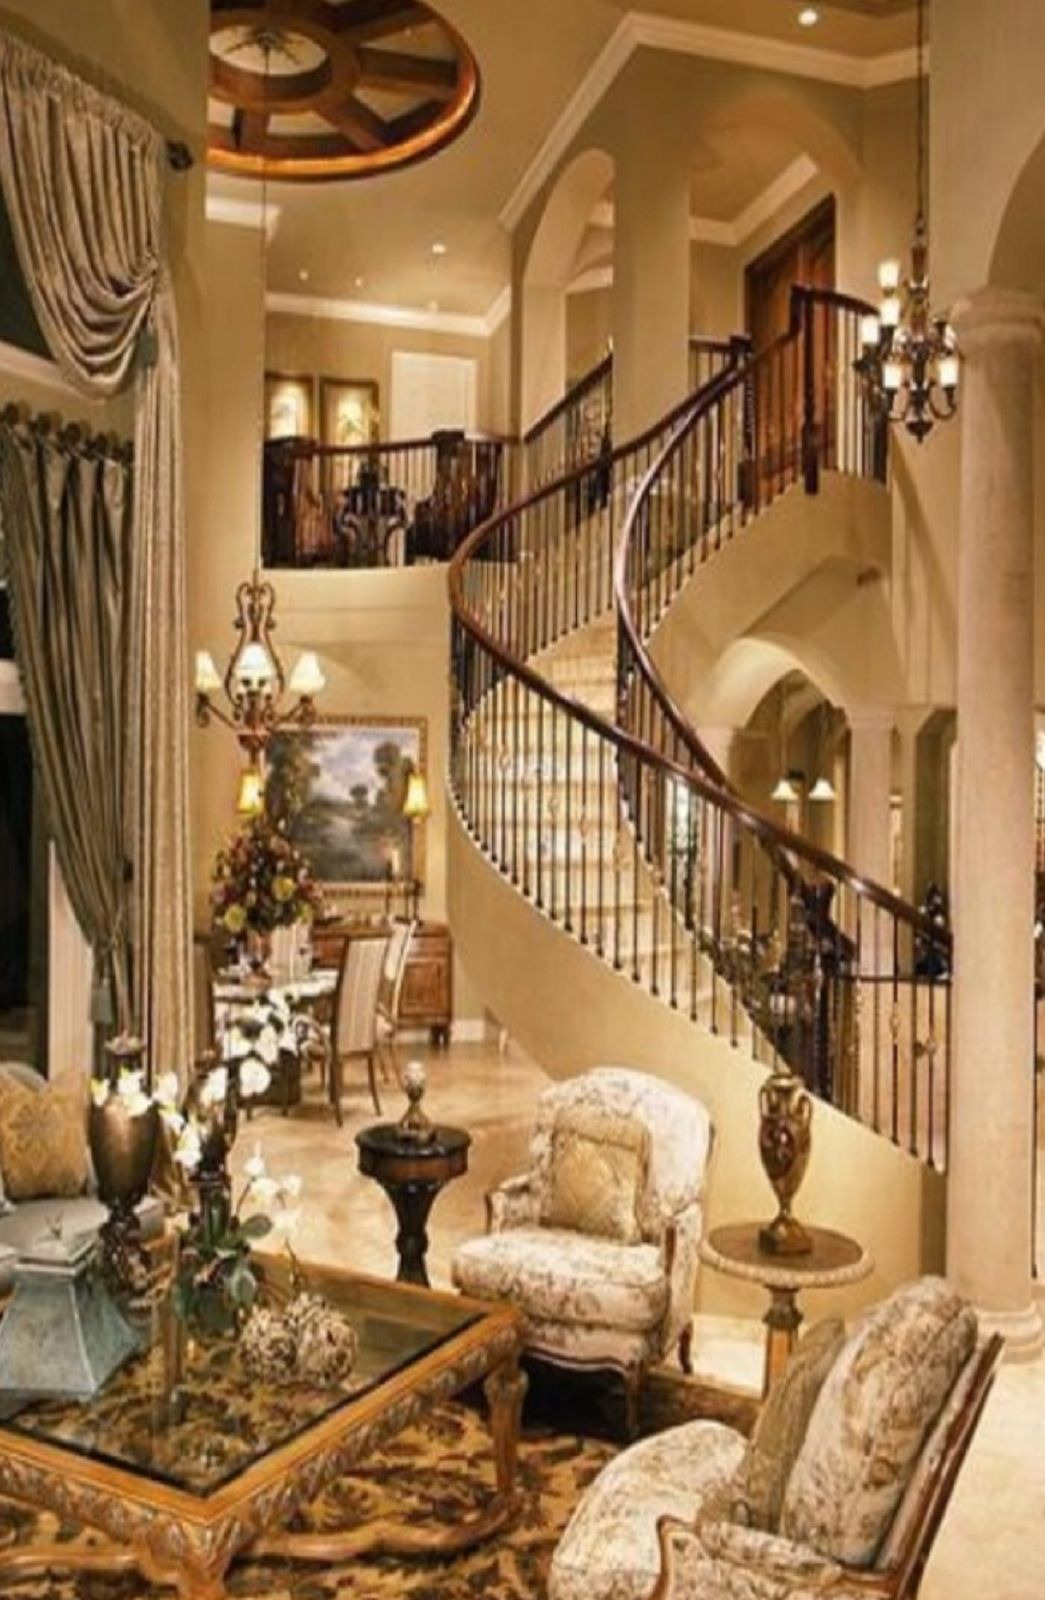 Luxury House Plans with Interior Photos Unique Luxury Home Interiors Grand Mansions Castles Dream Homes